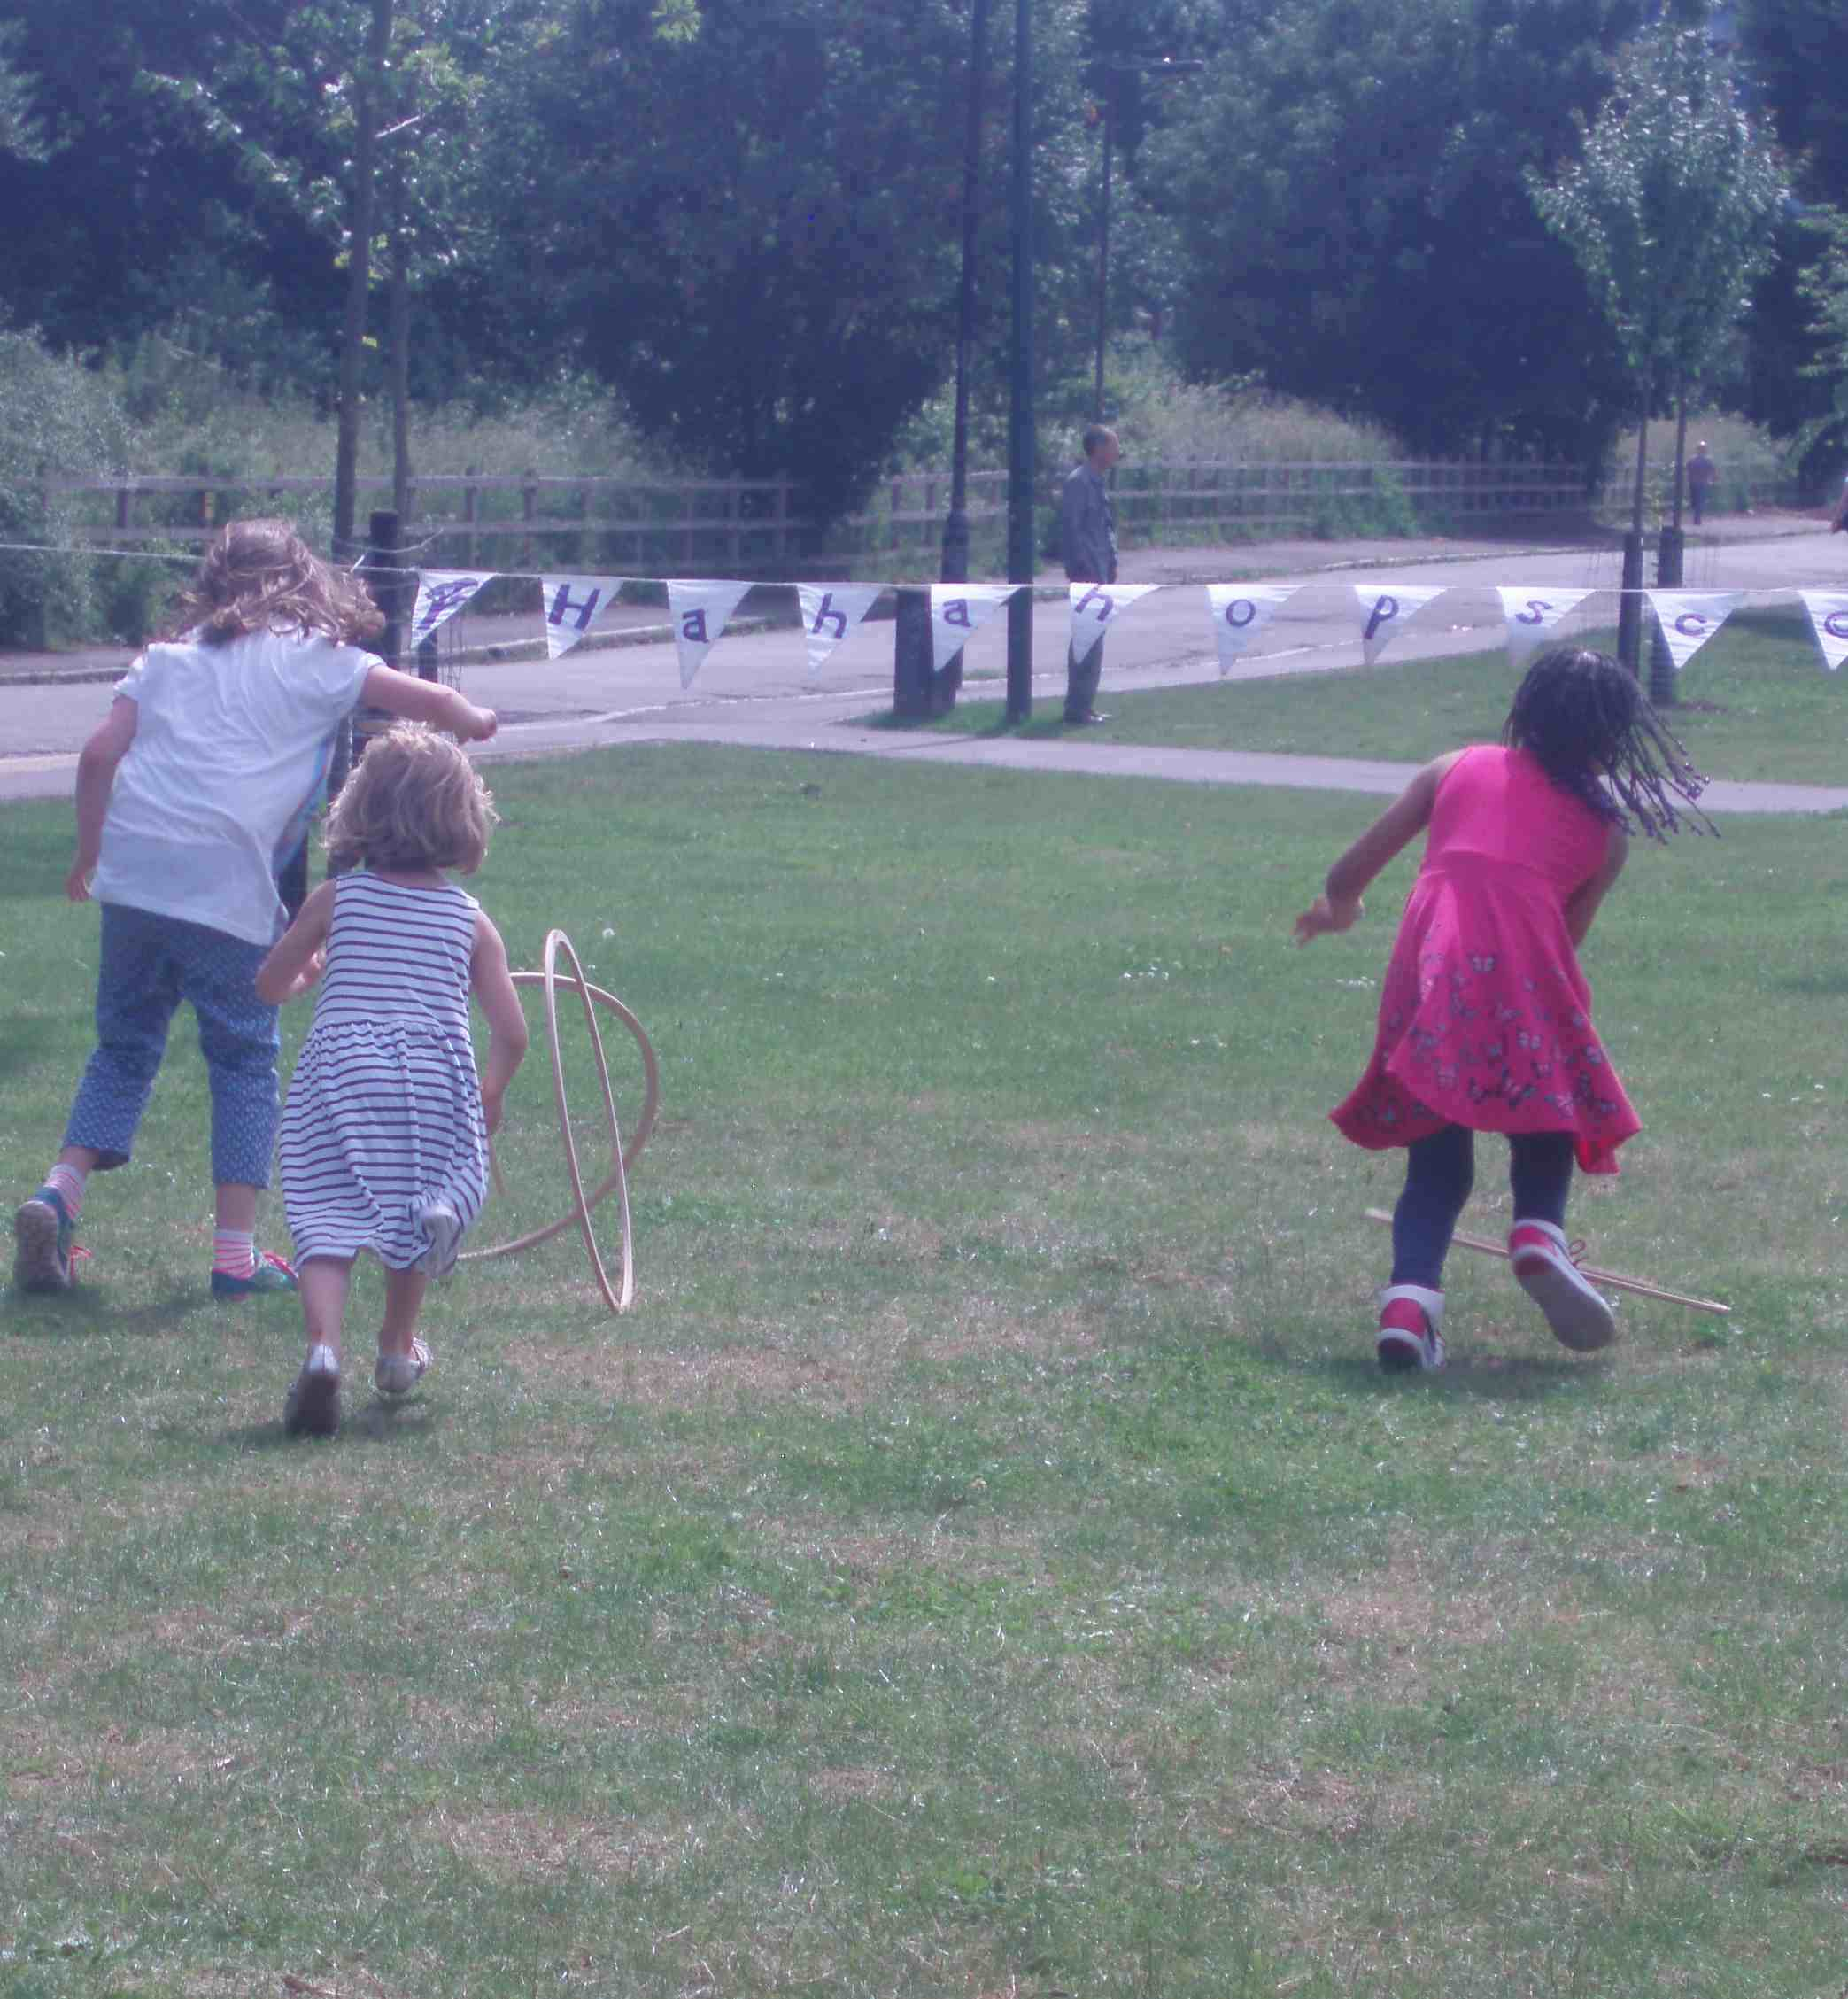 Hoops are harder than they look! Burgess Park, June 2014